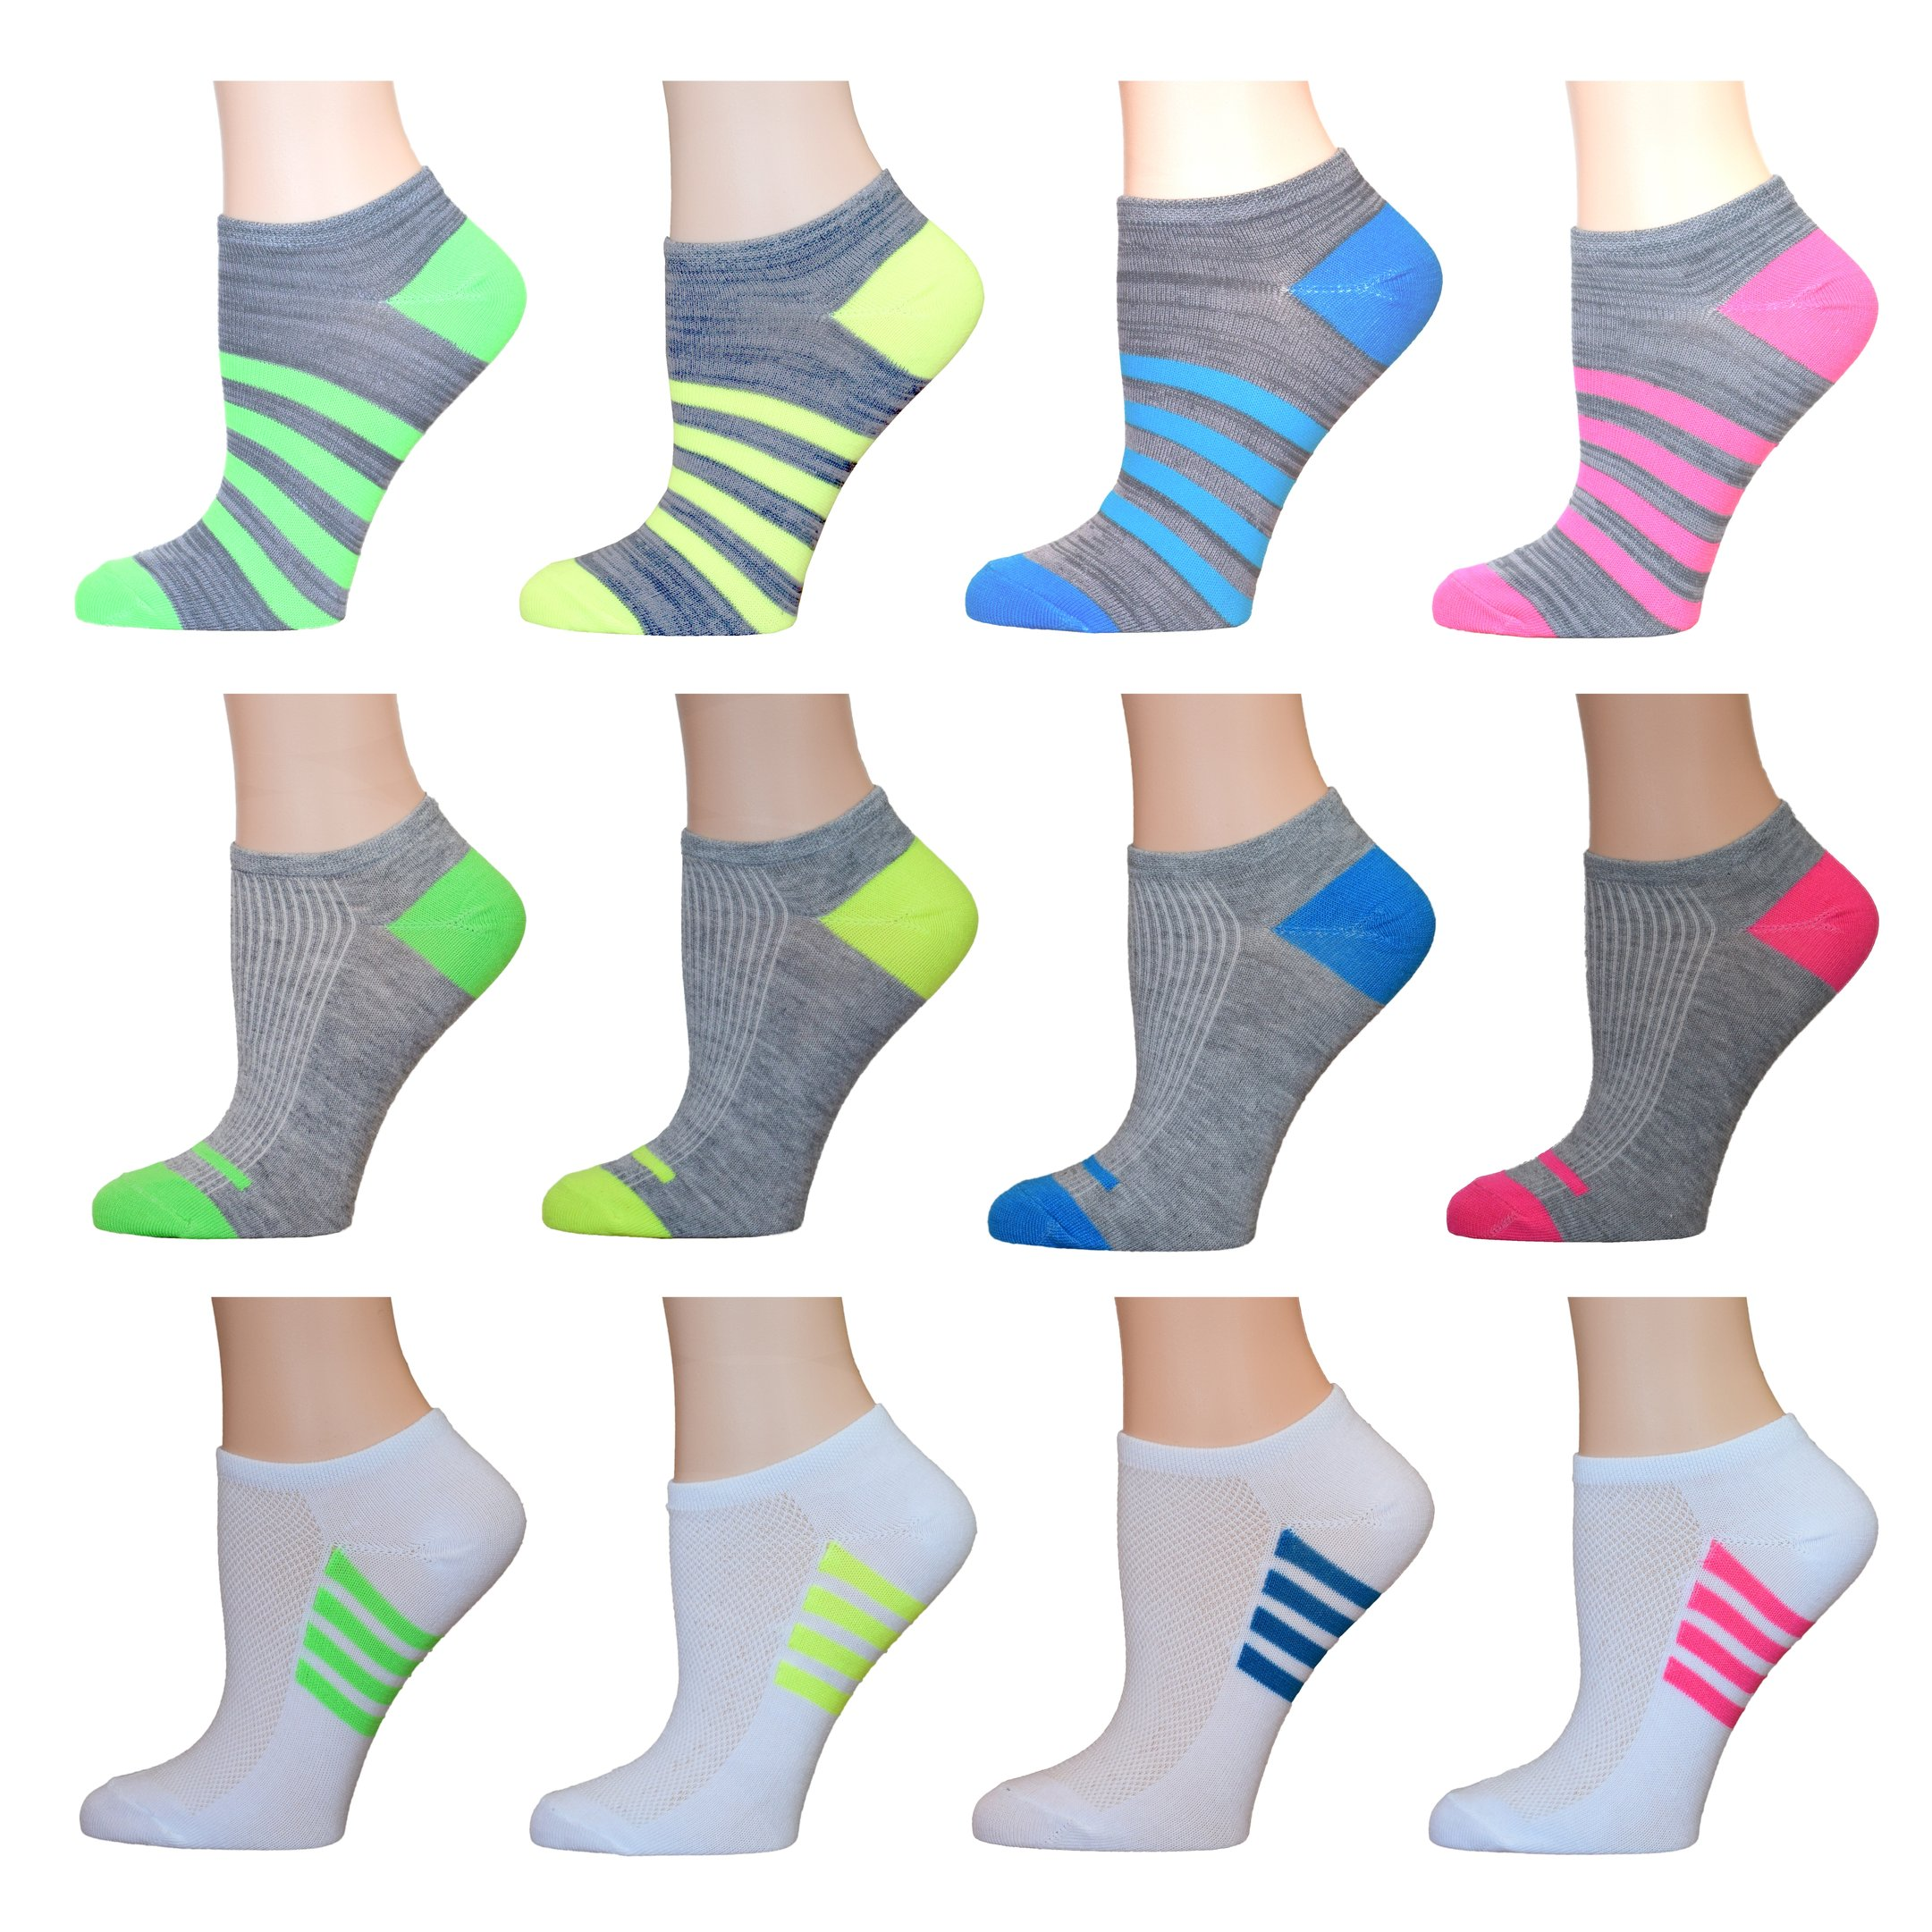 Protect Wrist For Cycling Moisture Control Elastic Sock Tube Socks Sea Turtle And Fishes Athletic Soccer Socks